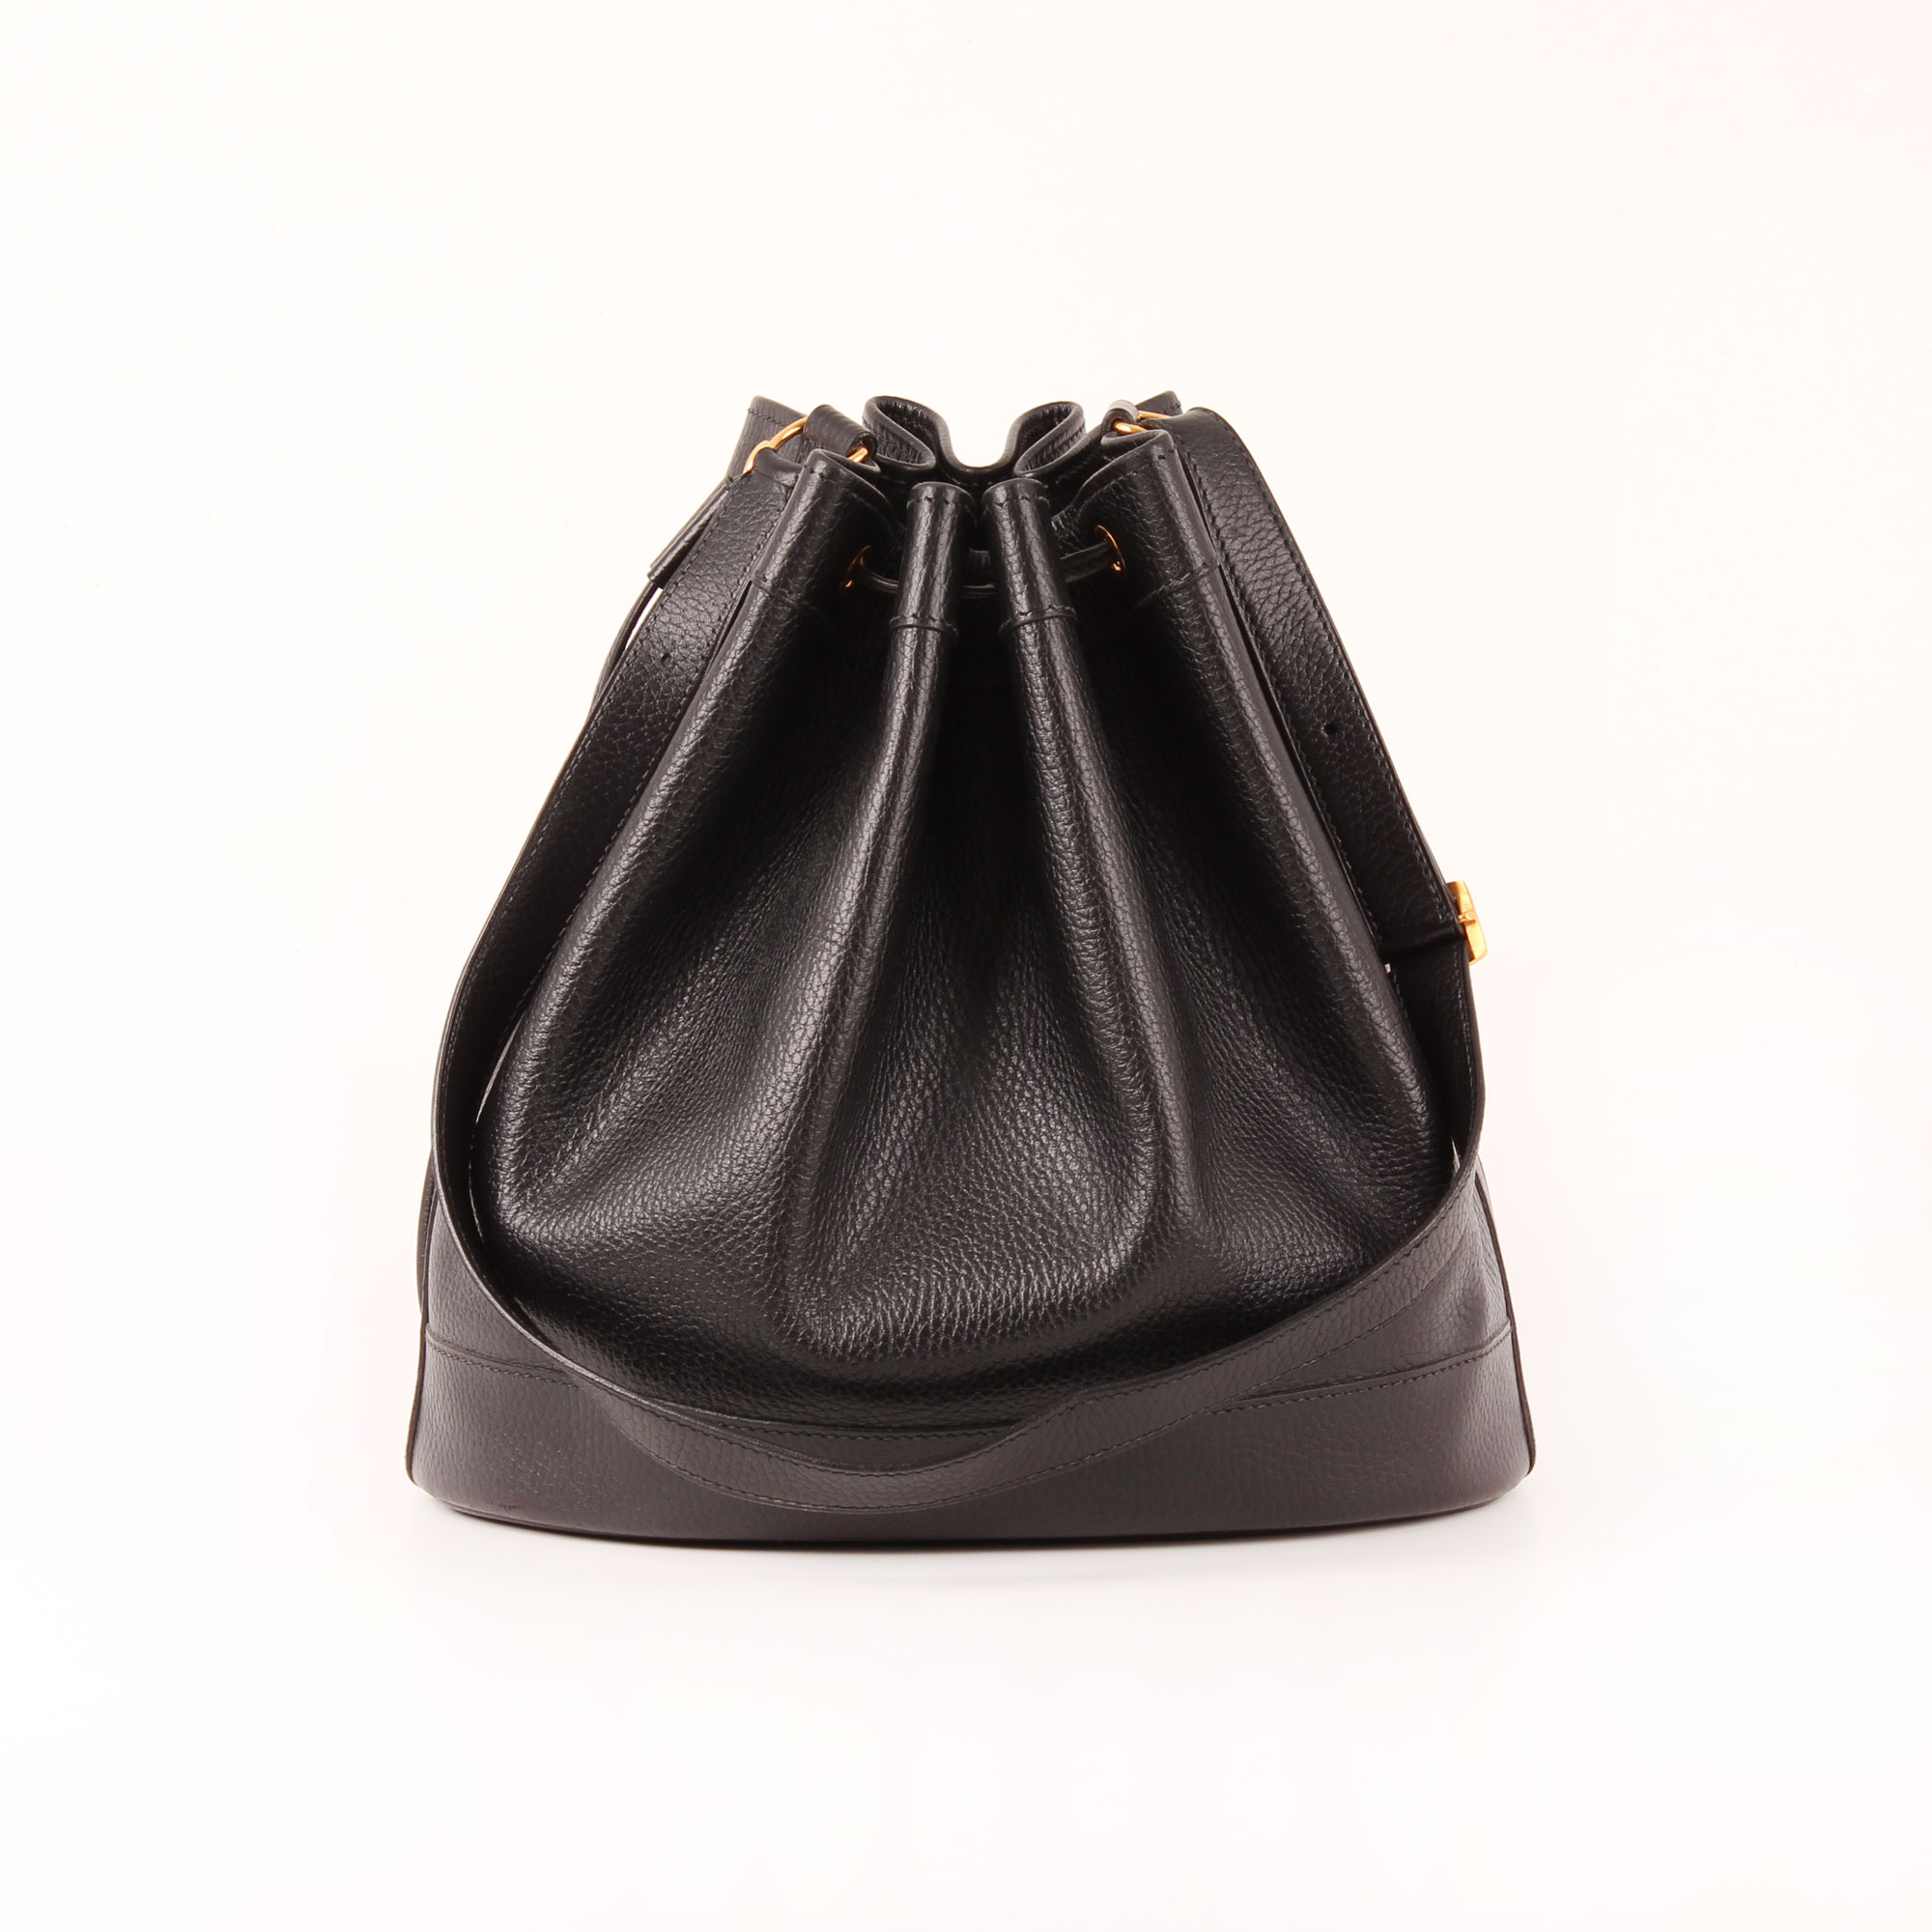 65e539c45f4 Front image of hermès market bucket bag togo black